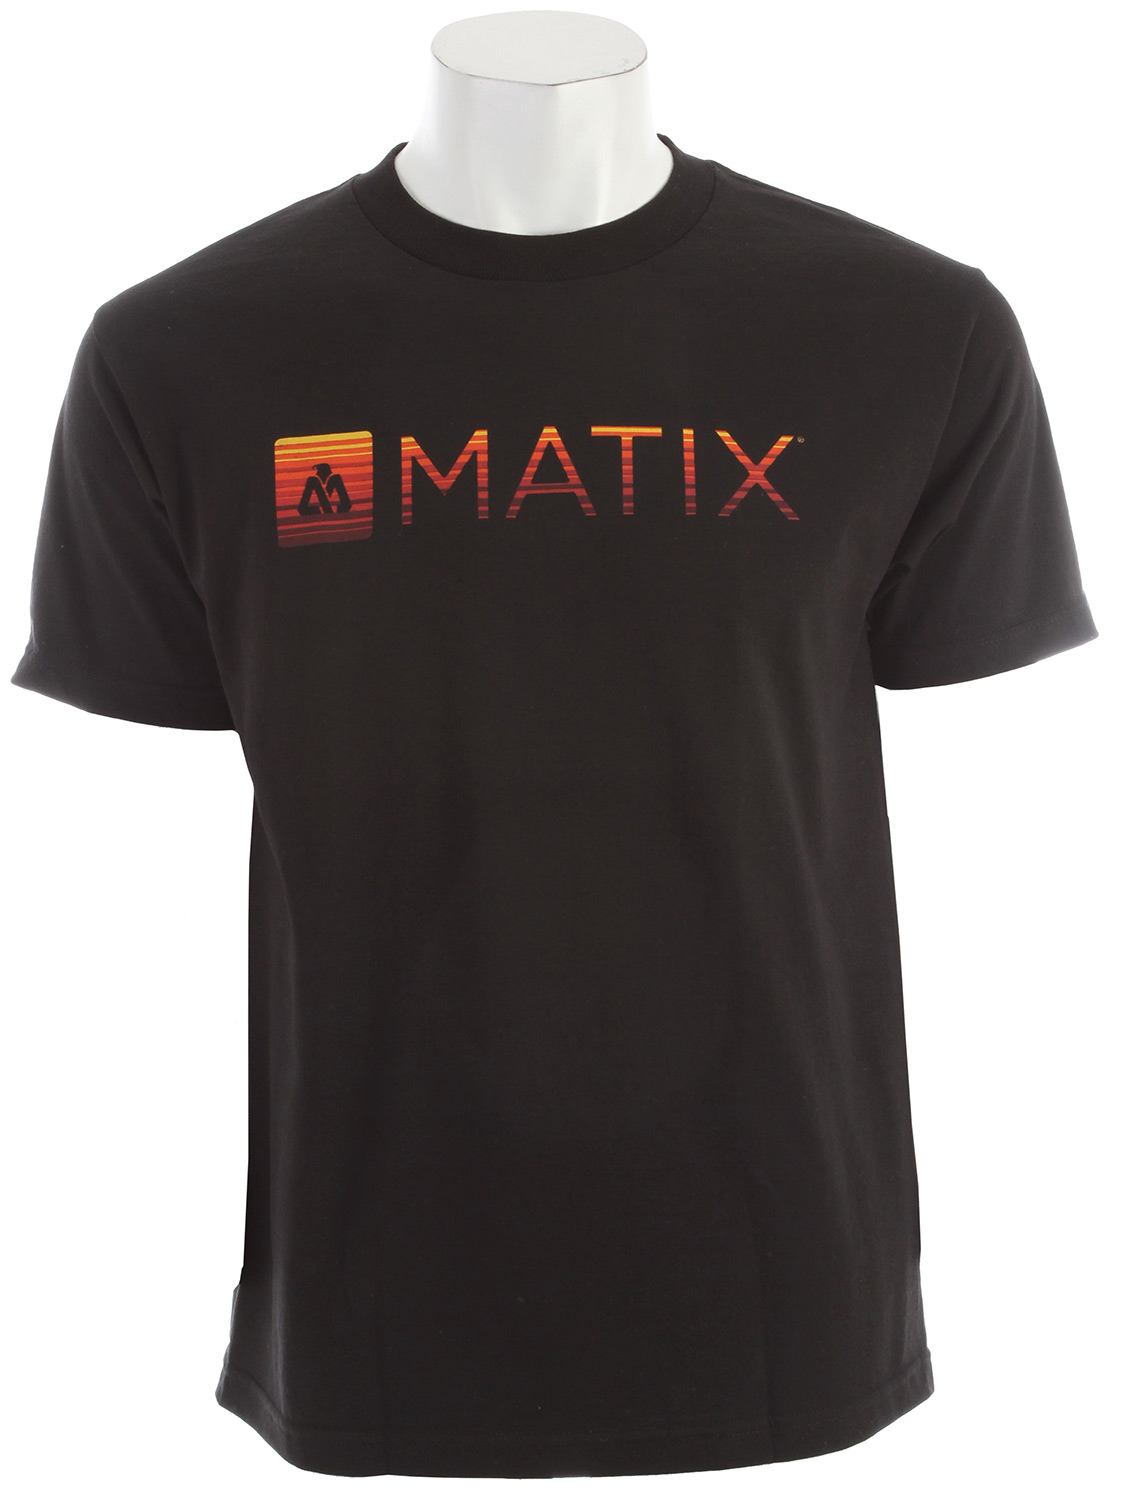 Matix Monolin Fills T-Shirt - $7.95